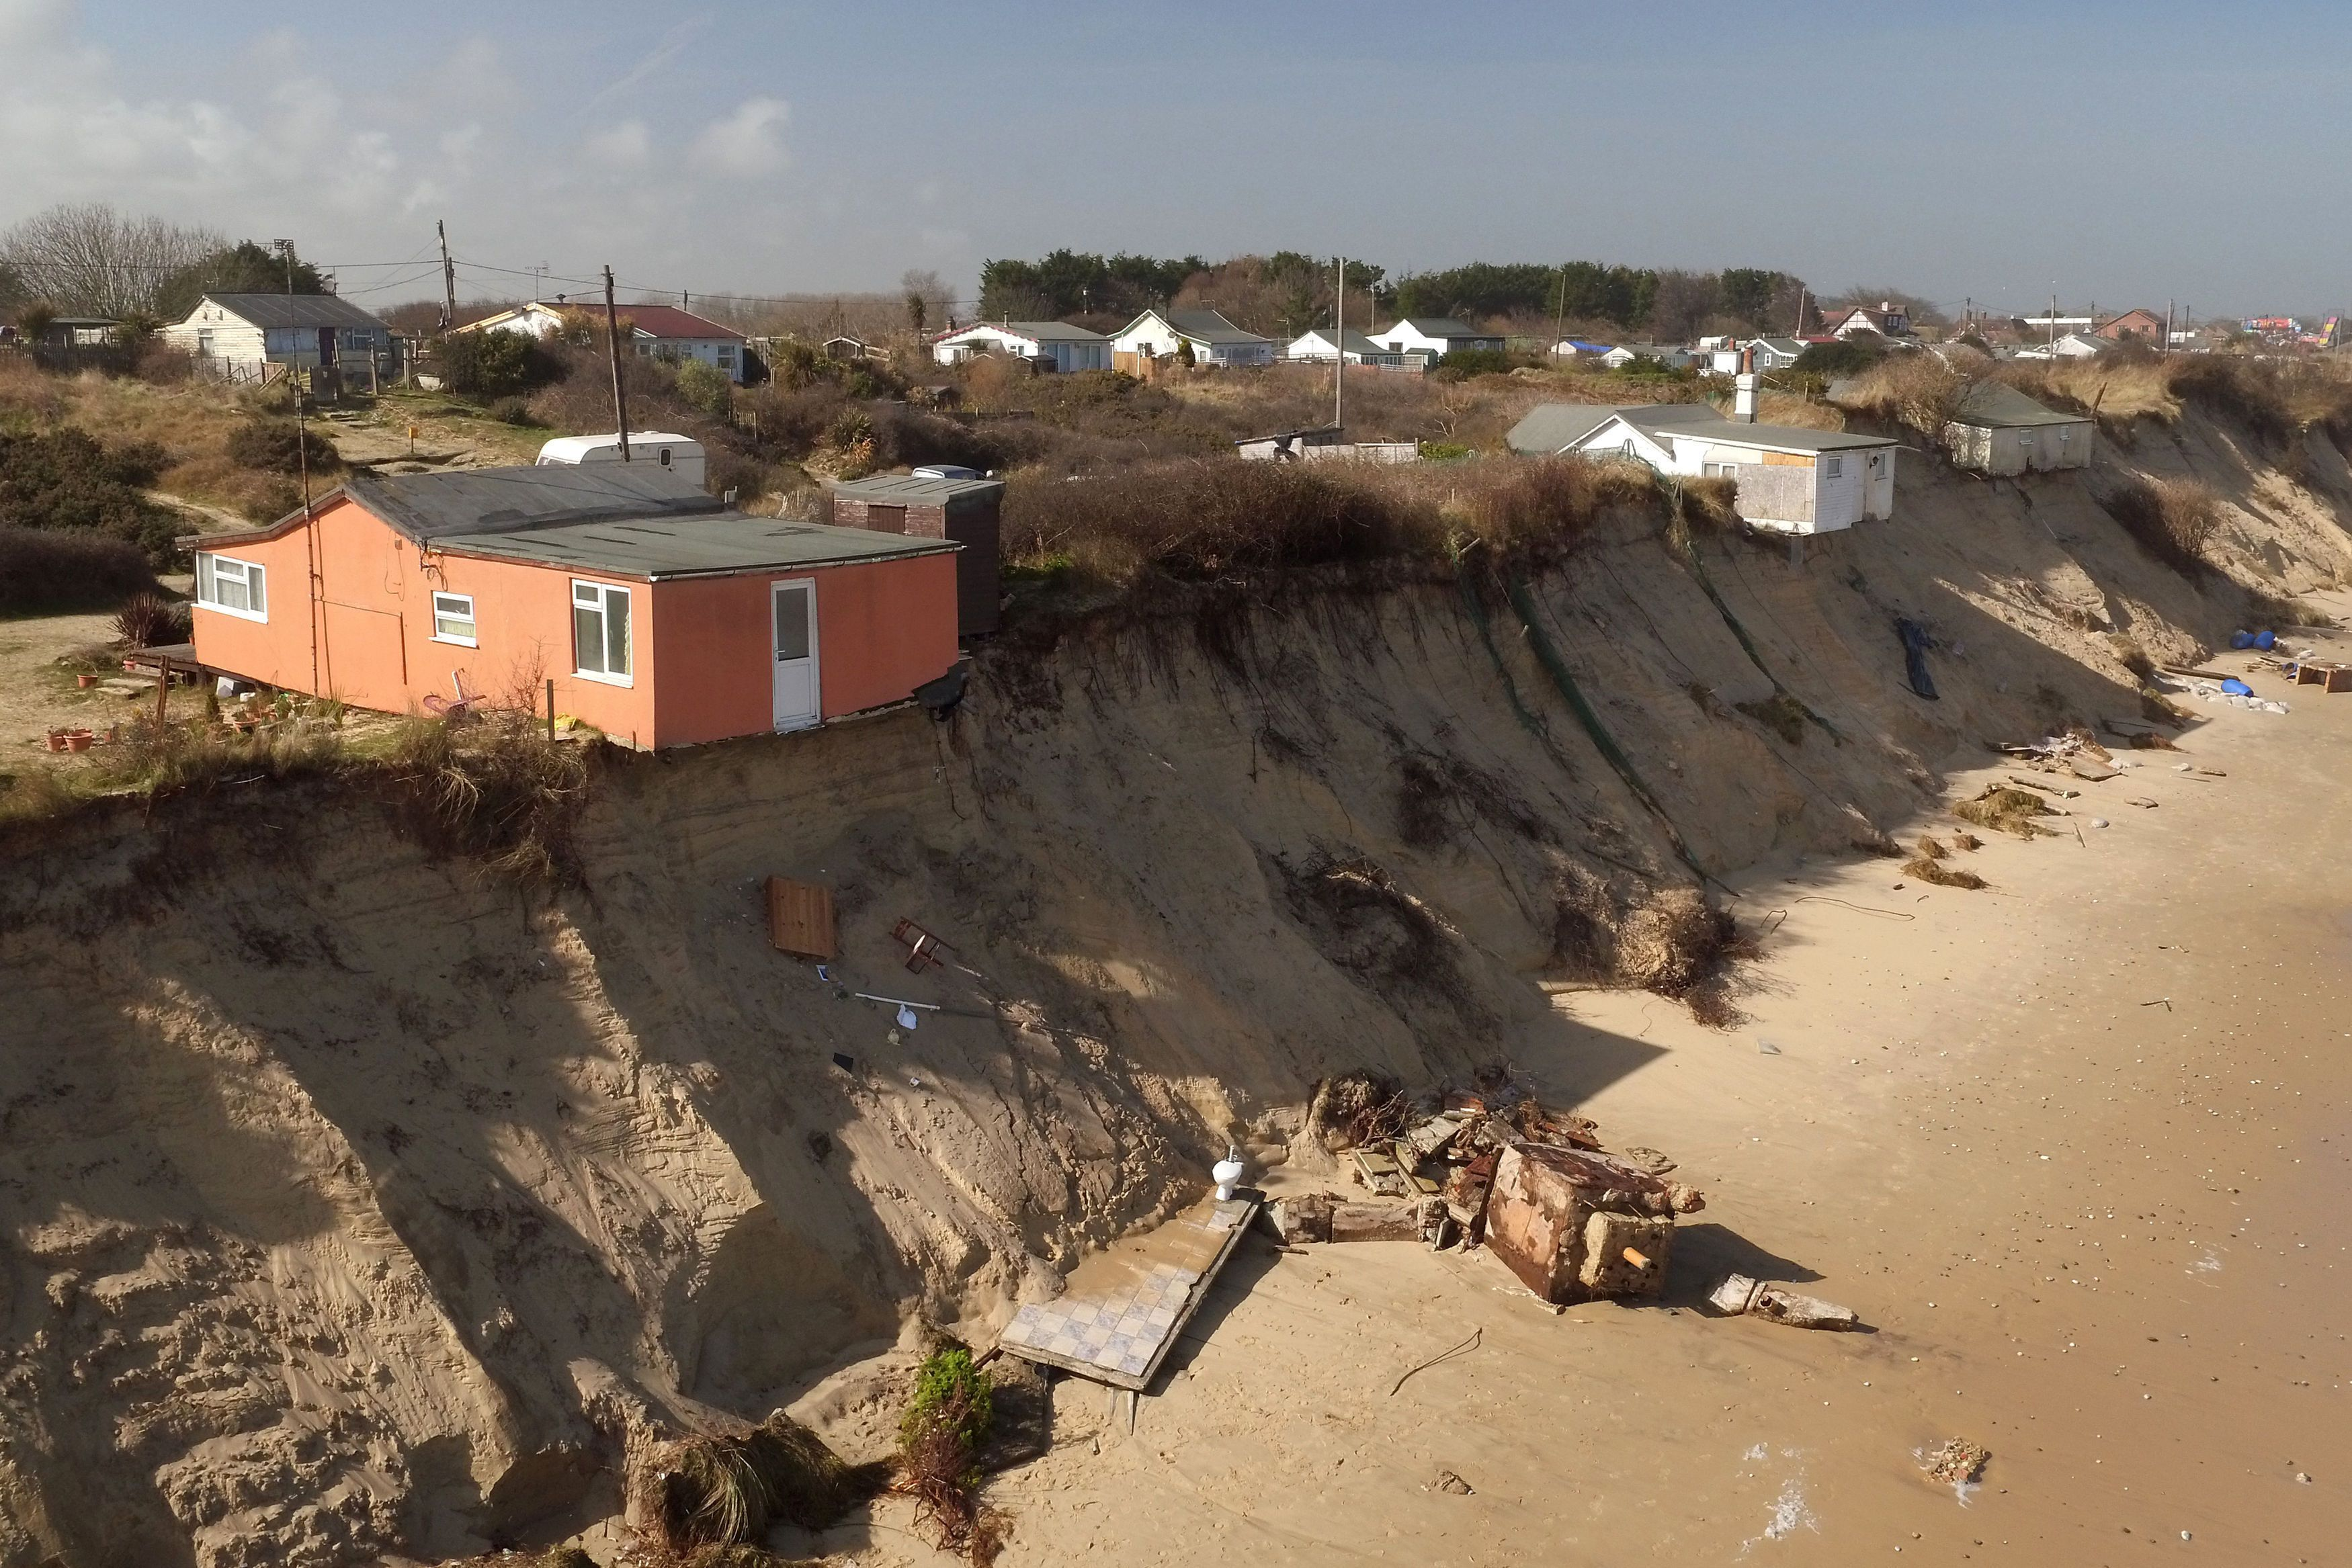 More Than A Million British Homes Will Be Swamped By Rising Sea Levels, Government Is